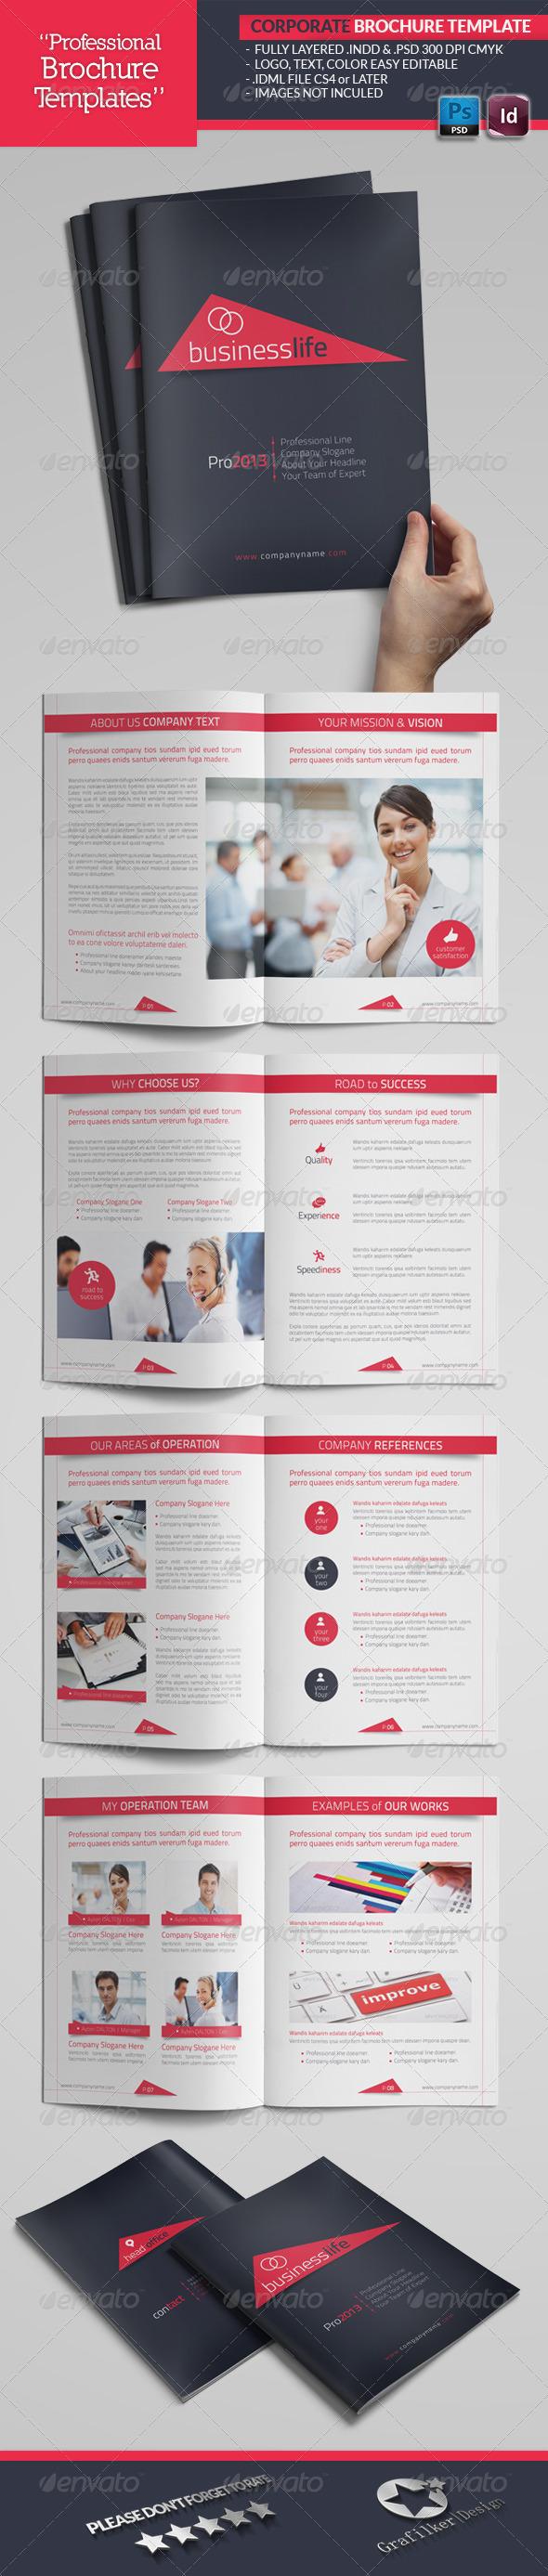 Corporate Catalogue Template by grafilker | GraphicRiver